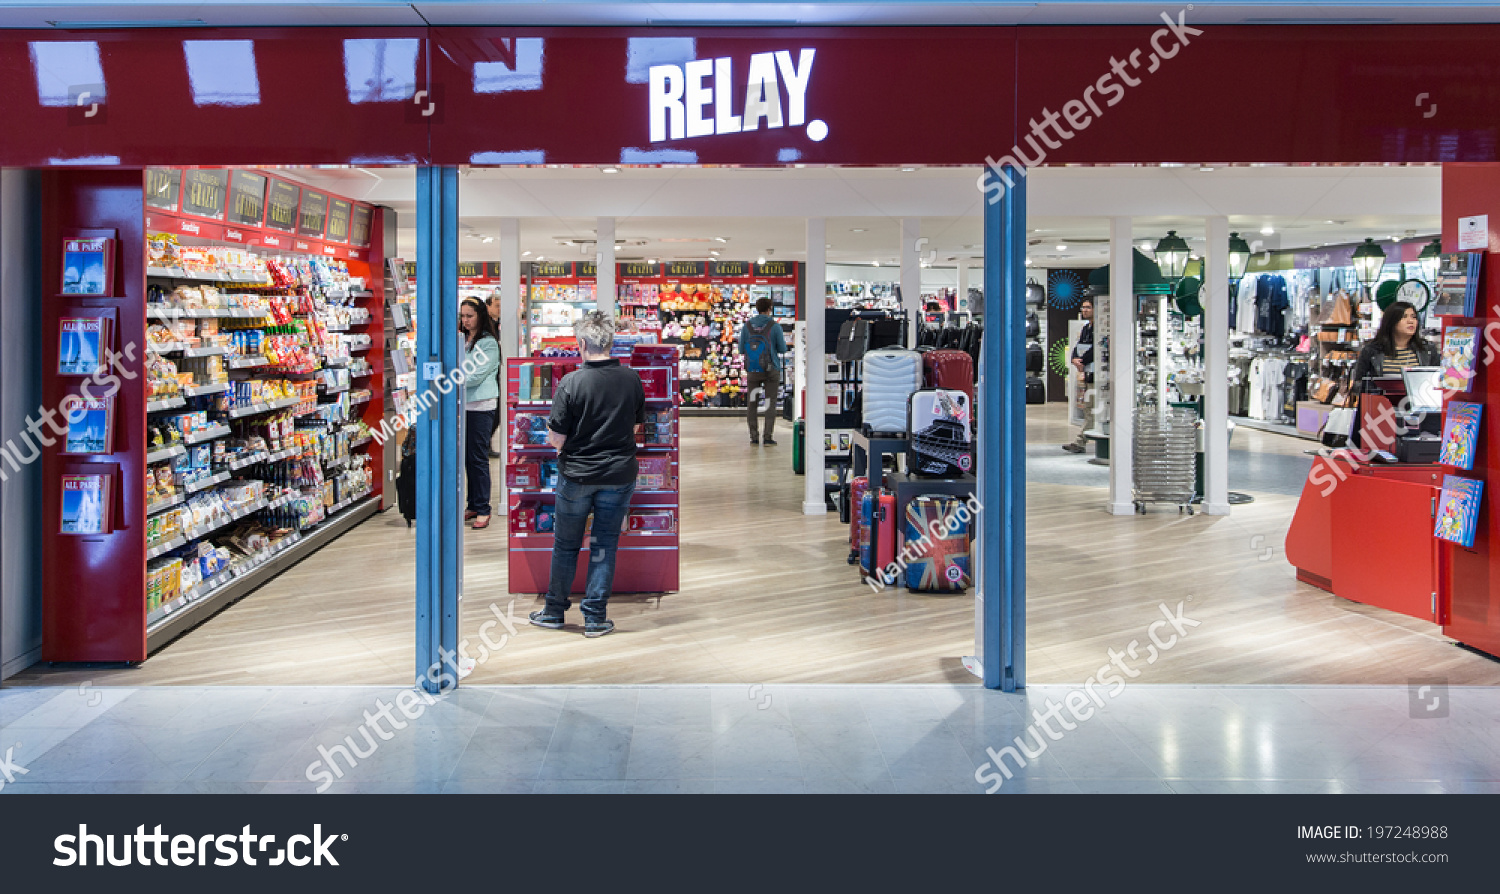 Paris France May 27 2014 Relay Stock Photo Edit Now 197248988 Terminal 3 Cdg A Newspaper Magazine Book